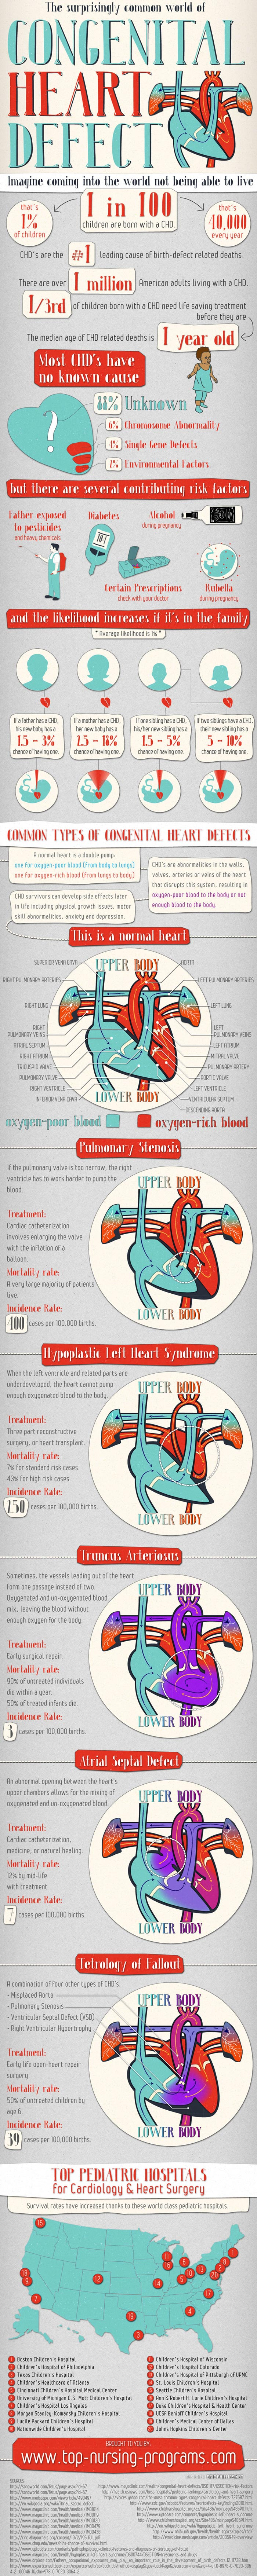 Congenital Heart Defects Statistics-Infographic